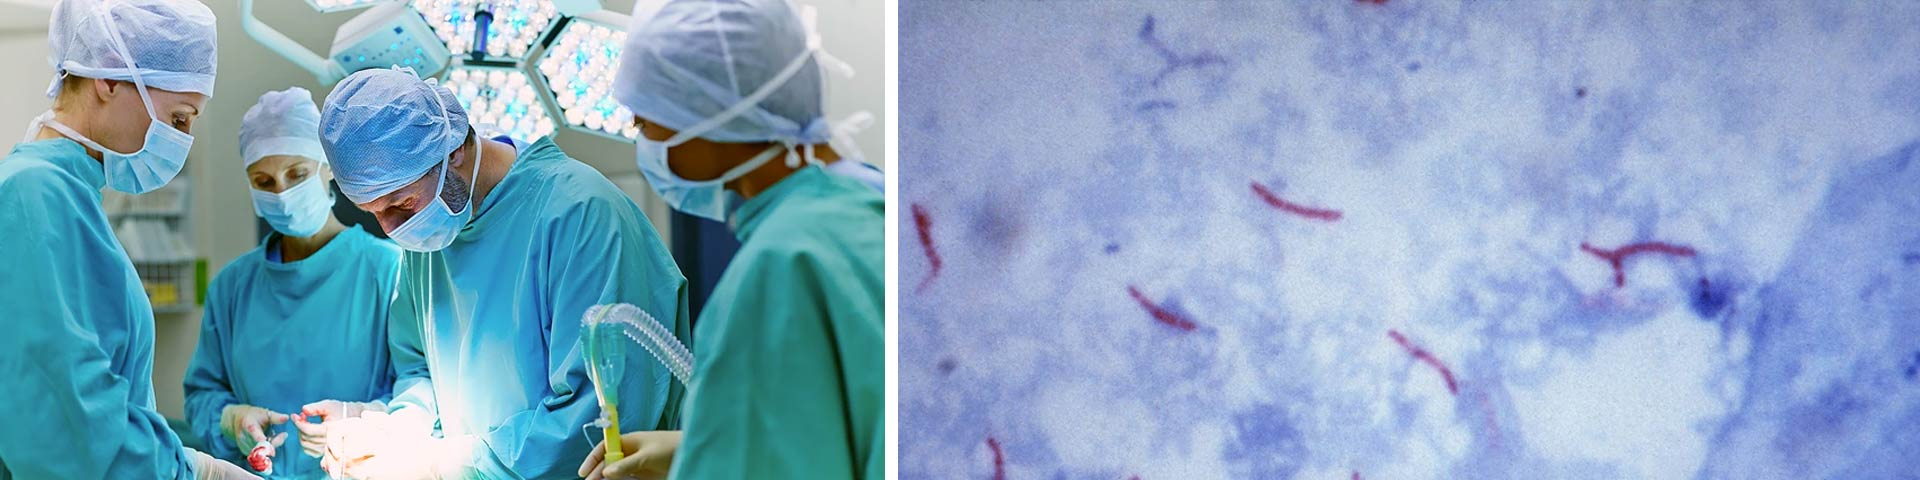 Mycobacterium chimaera and open cardiac surgery